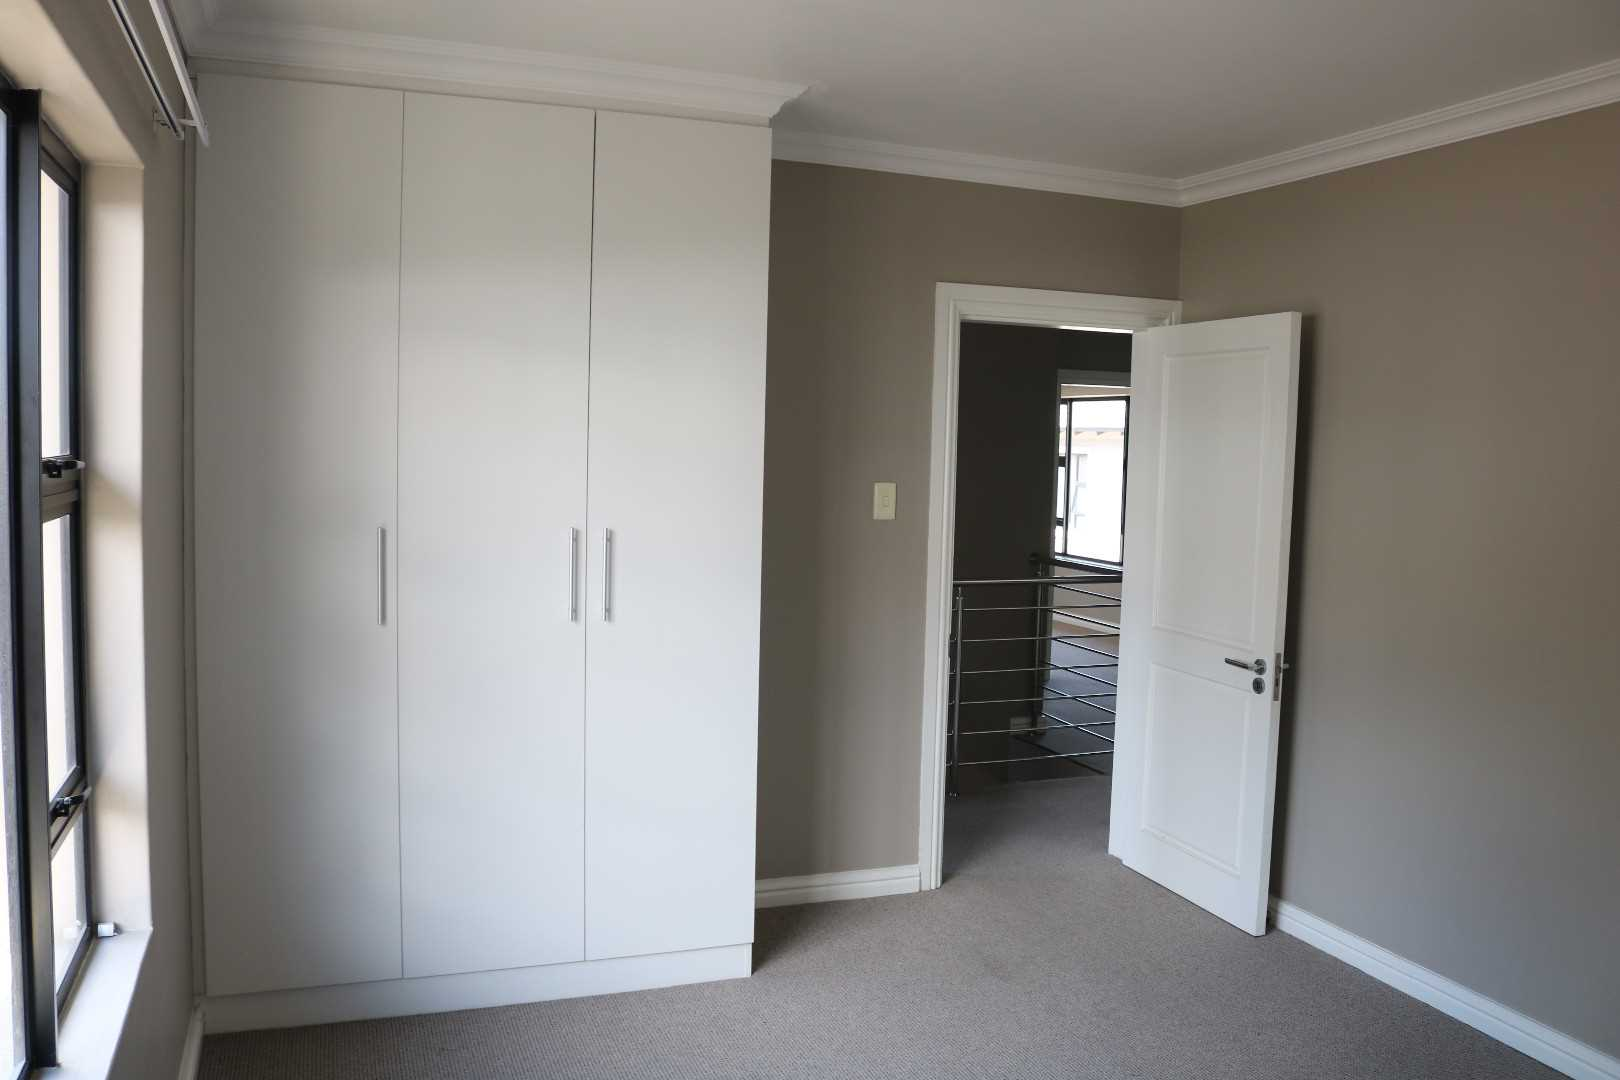 1st bedroom entrance and bic view